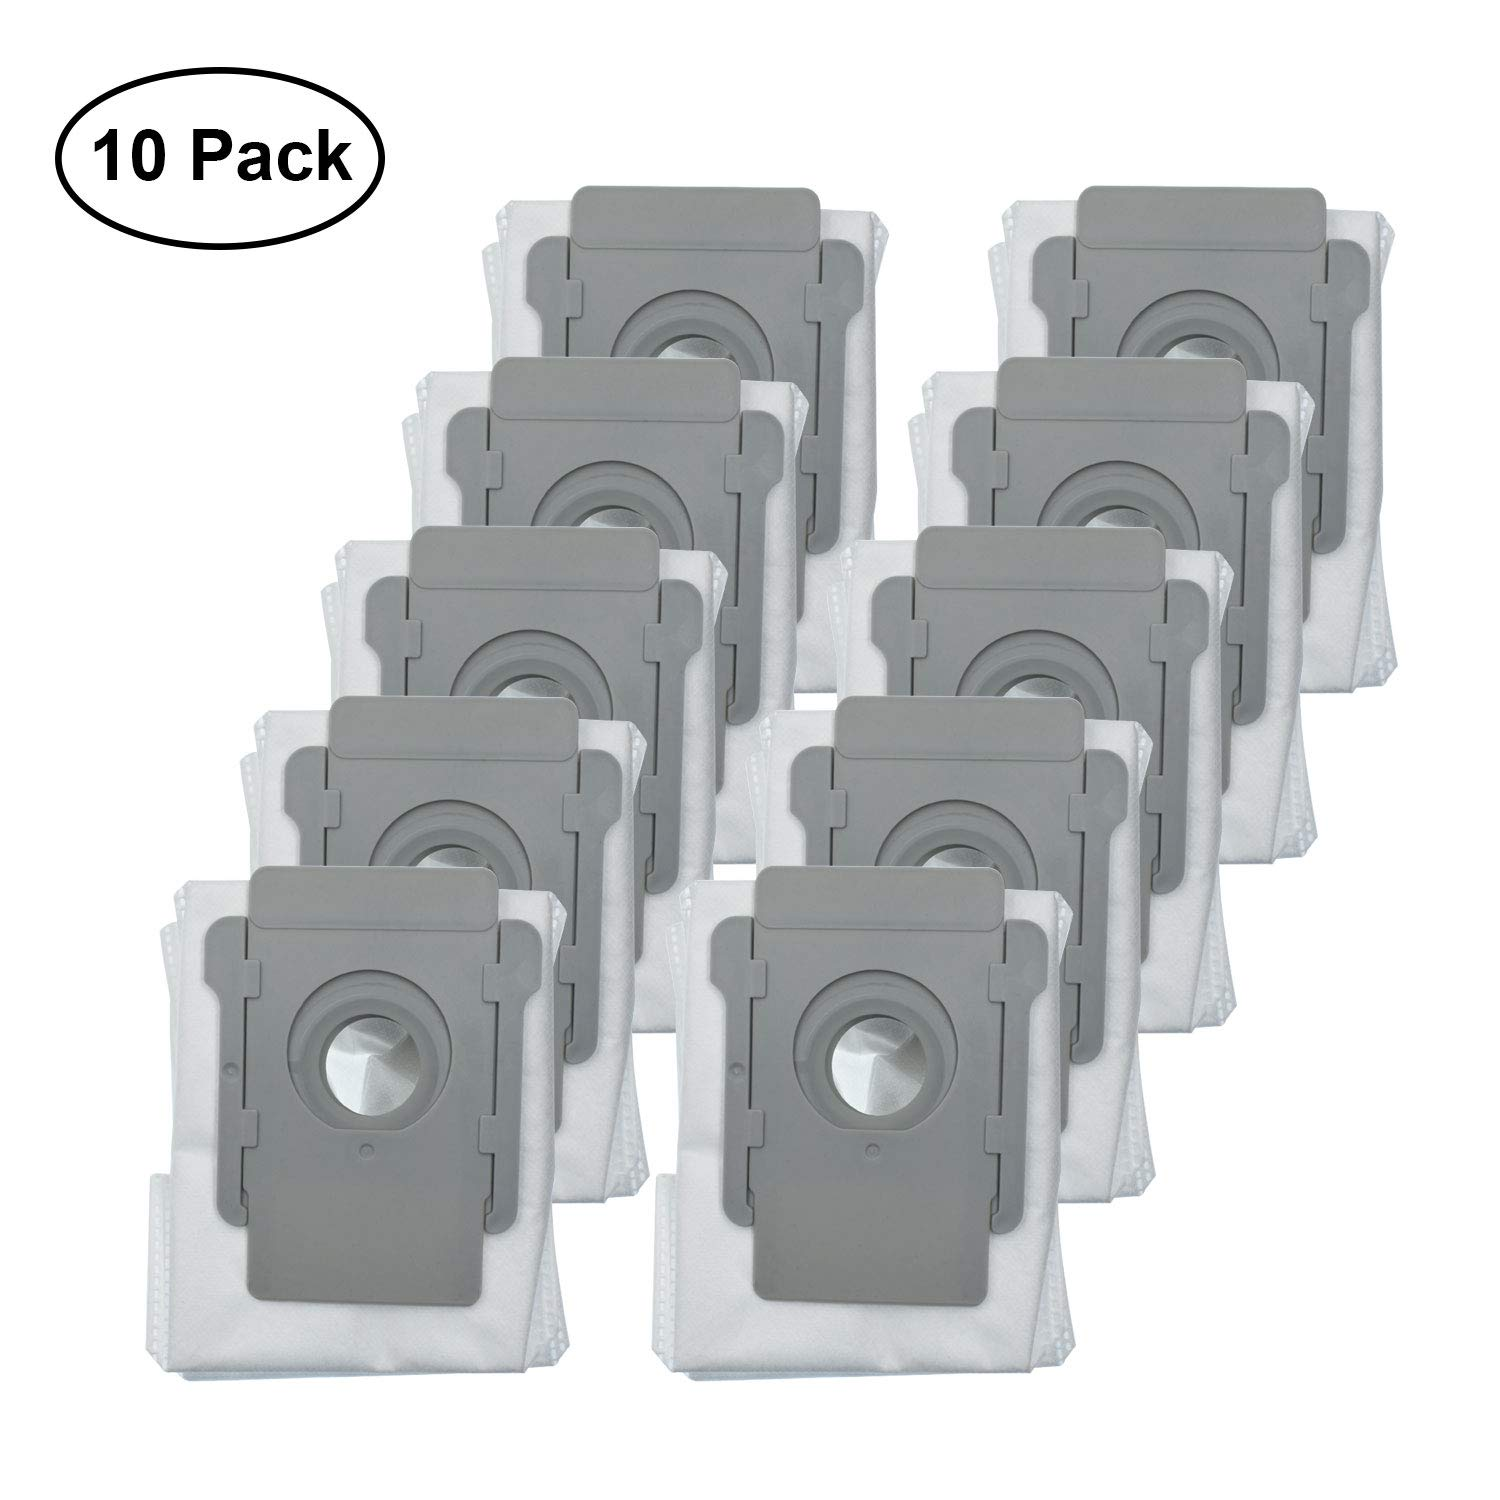 Lemige 10 Packs Vacuum Bags Compatible with iRobot Roomba i7 i7+/Plus s9+ (9550) Clean Base Automatic Dirt Disposal Bags by Lemige